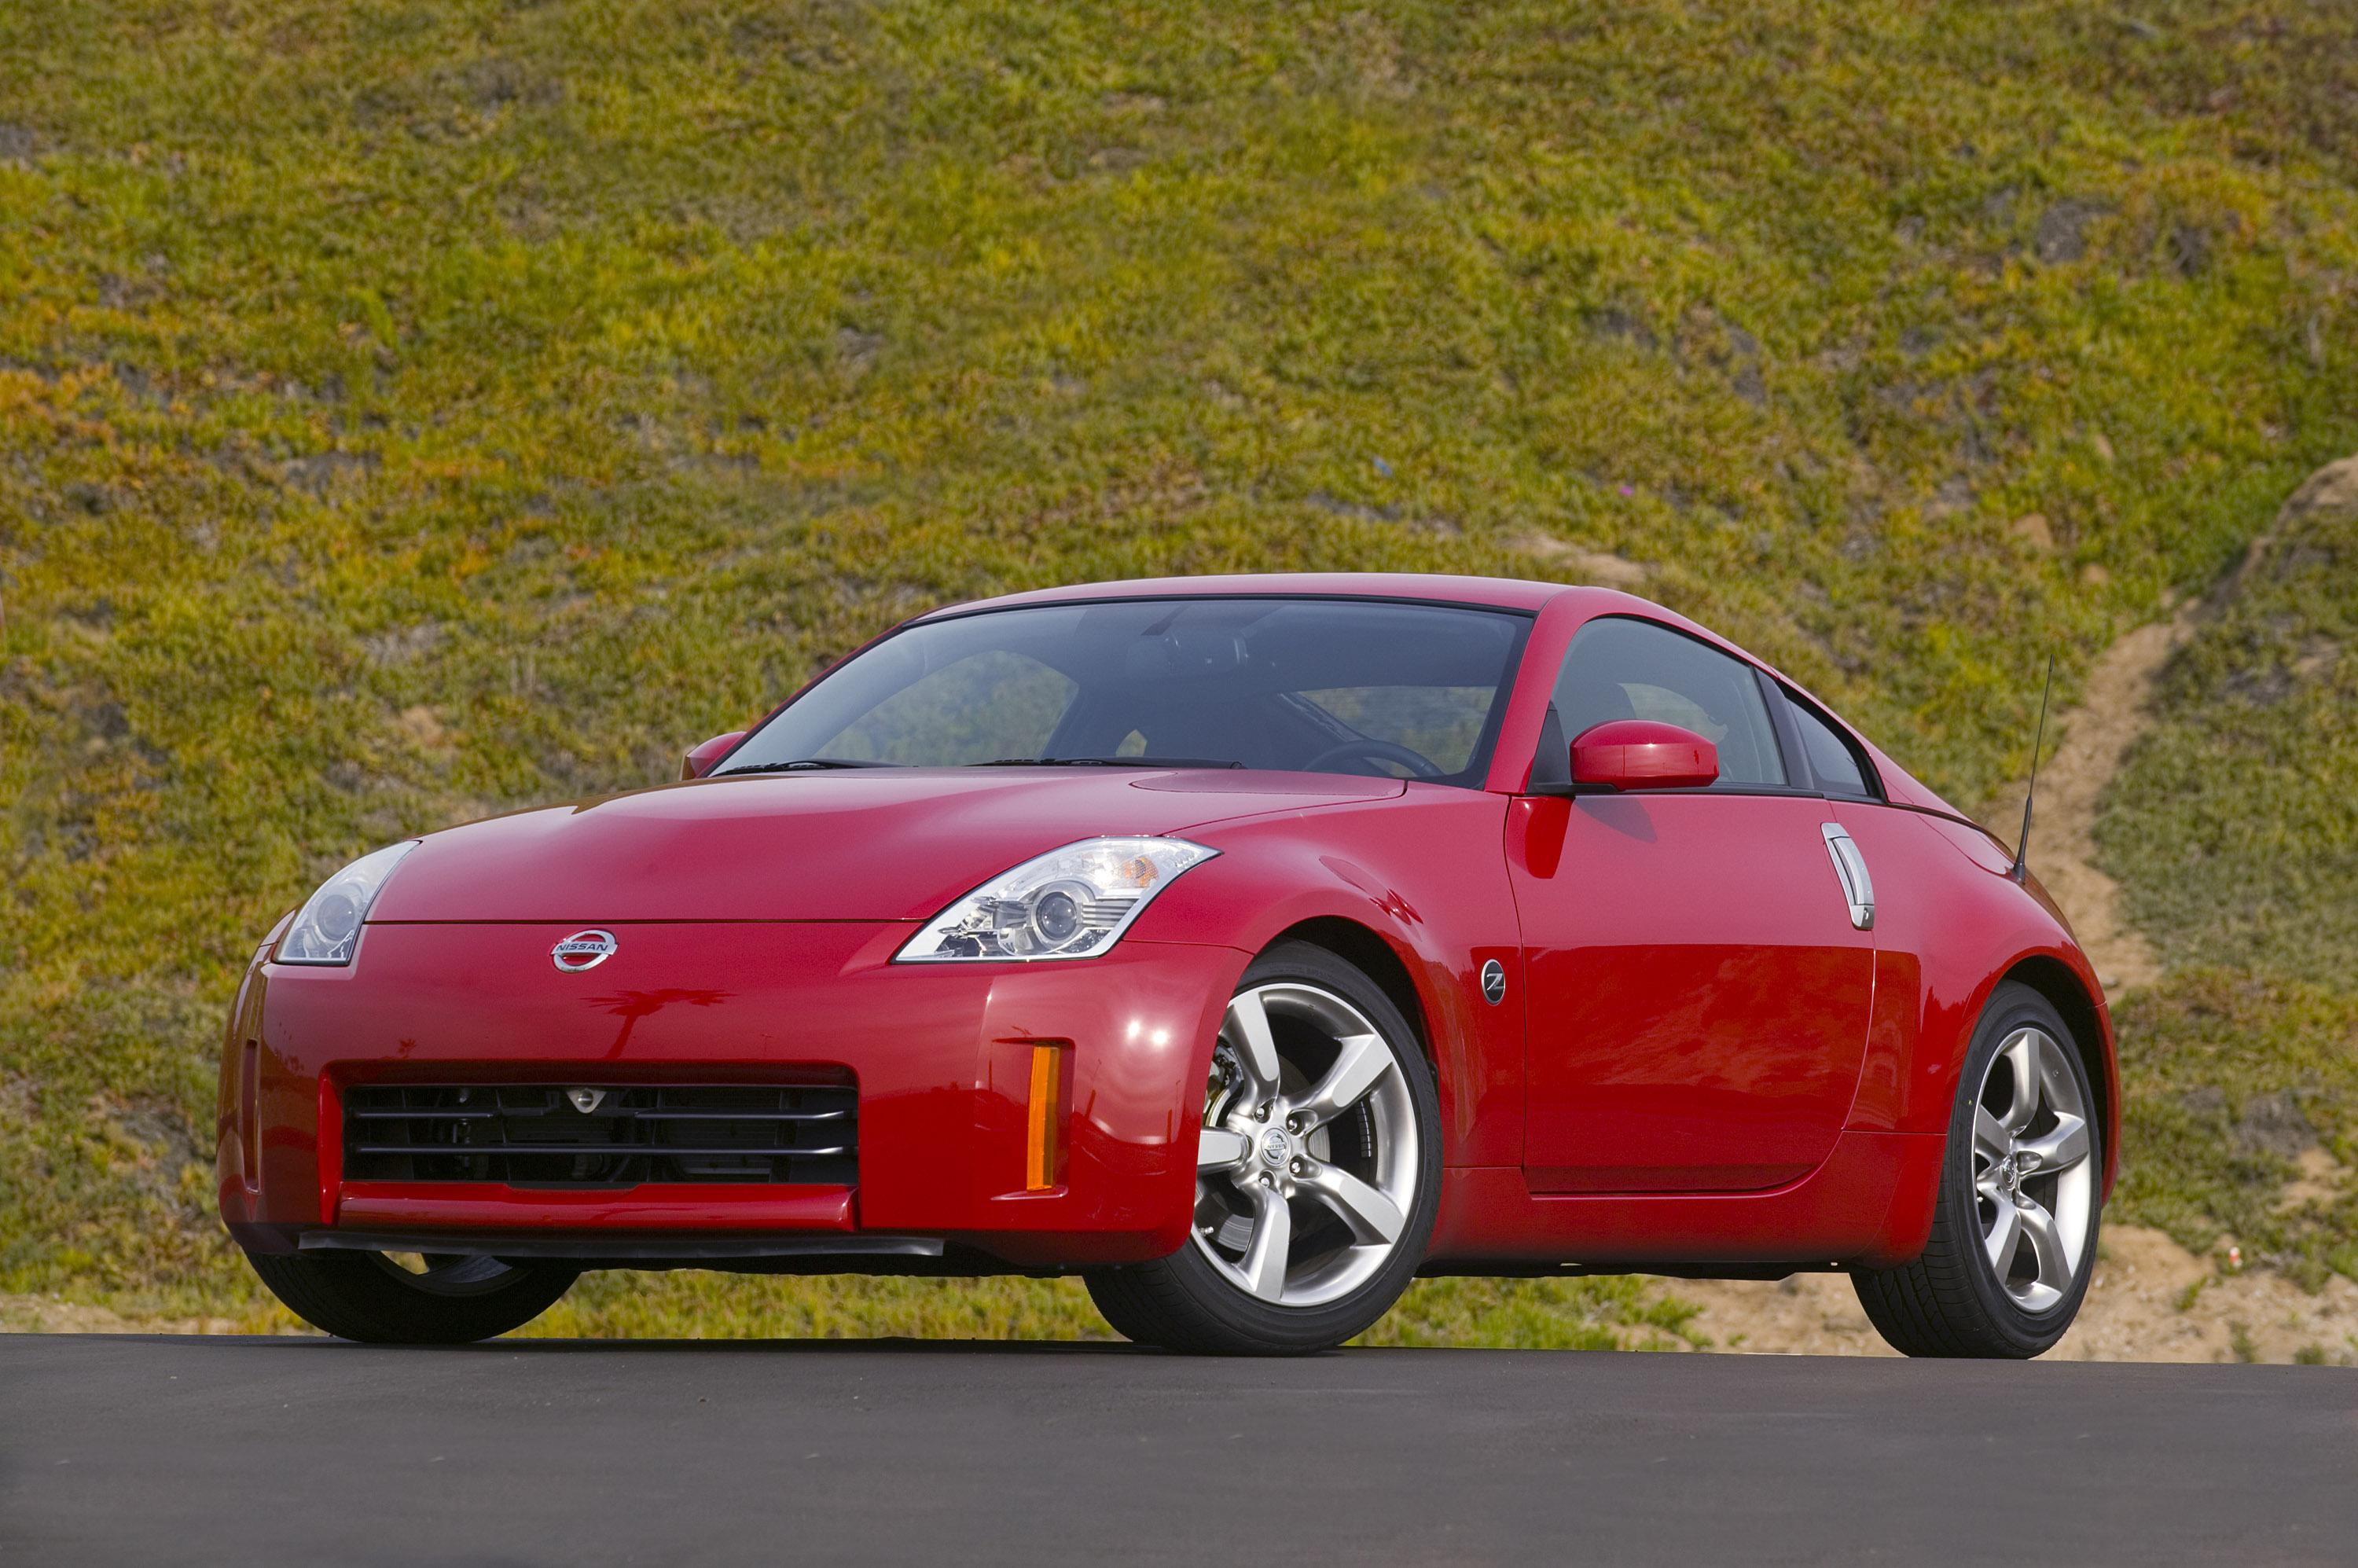 Nissan 350Z News And Reviews | Top Speed. »